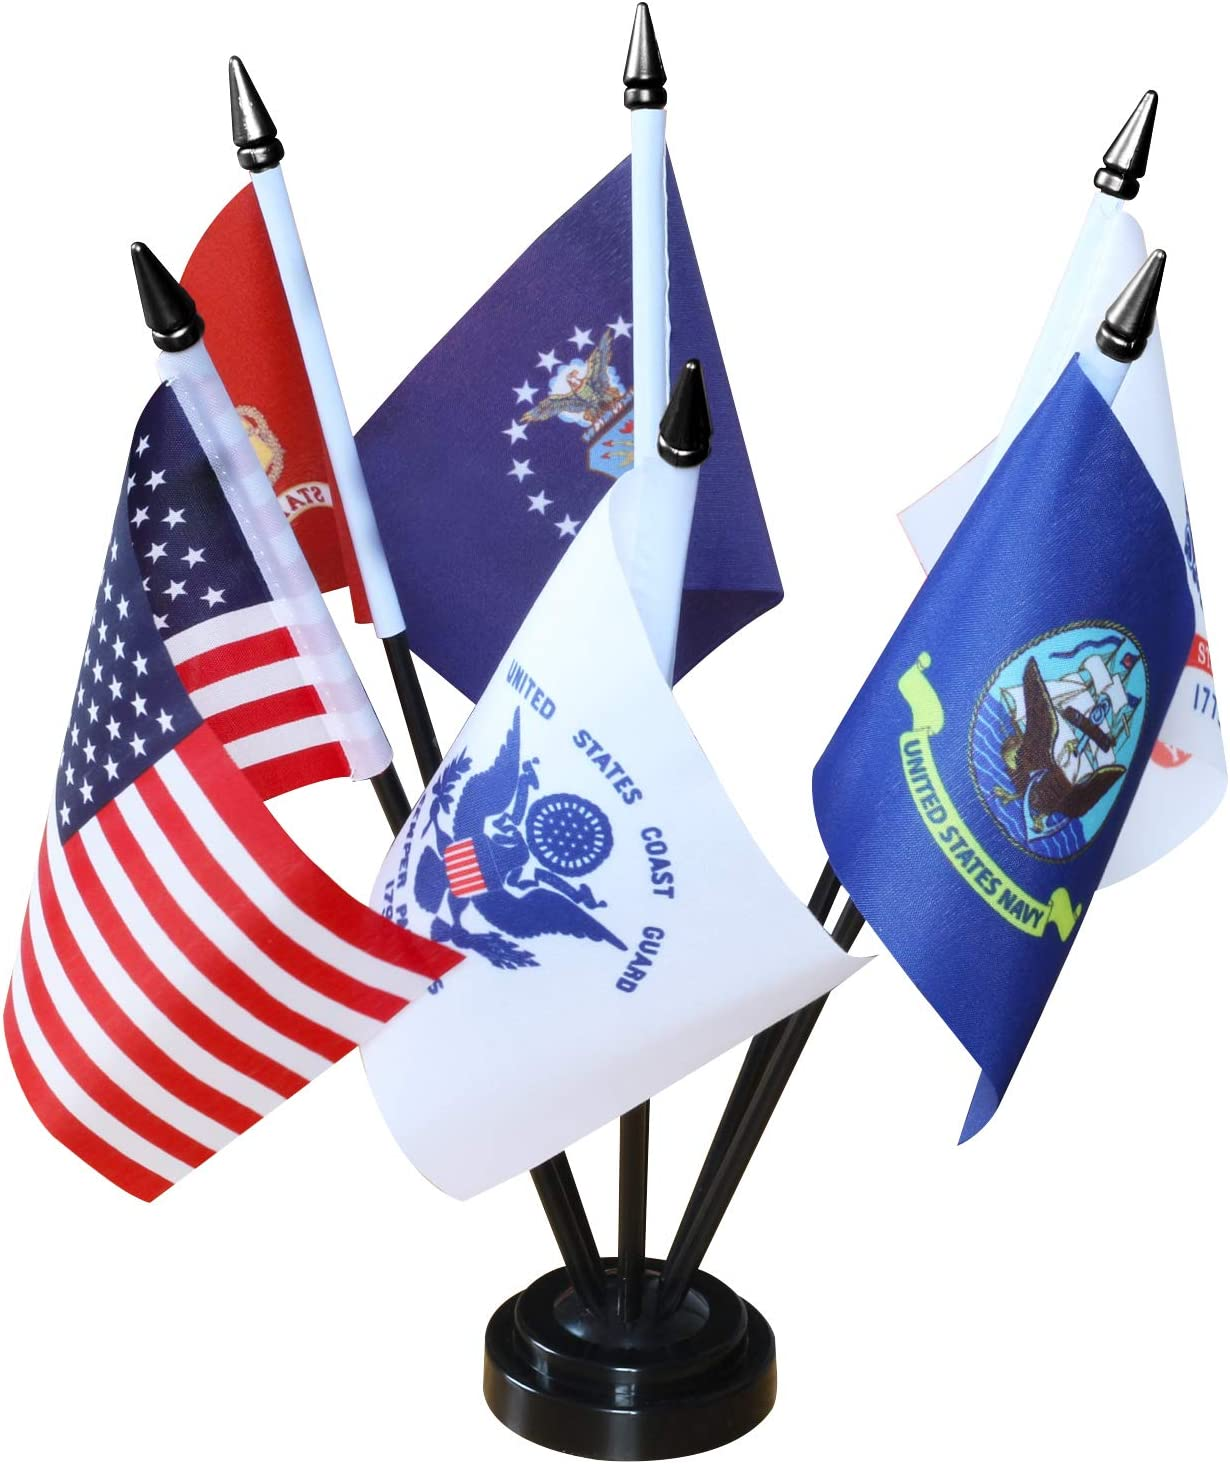 "ANLEY USA Armed Service Desk Flags Set - 6 X 4 inches Miniature American Military Sectors Desktop Flag with 11"" Solid Plastic Pole - Vivid Color & Fade Resistant"